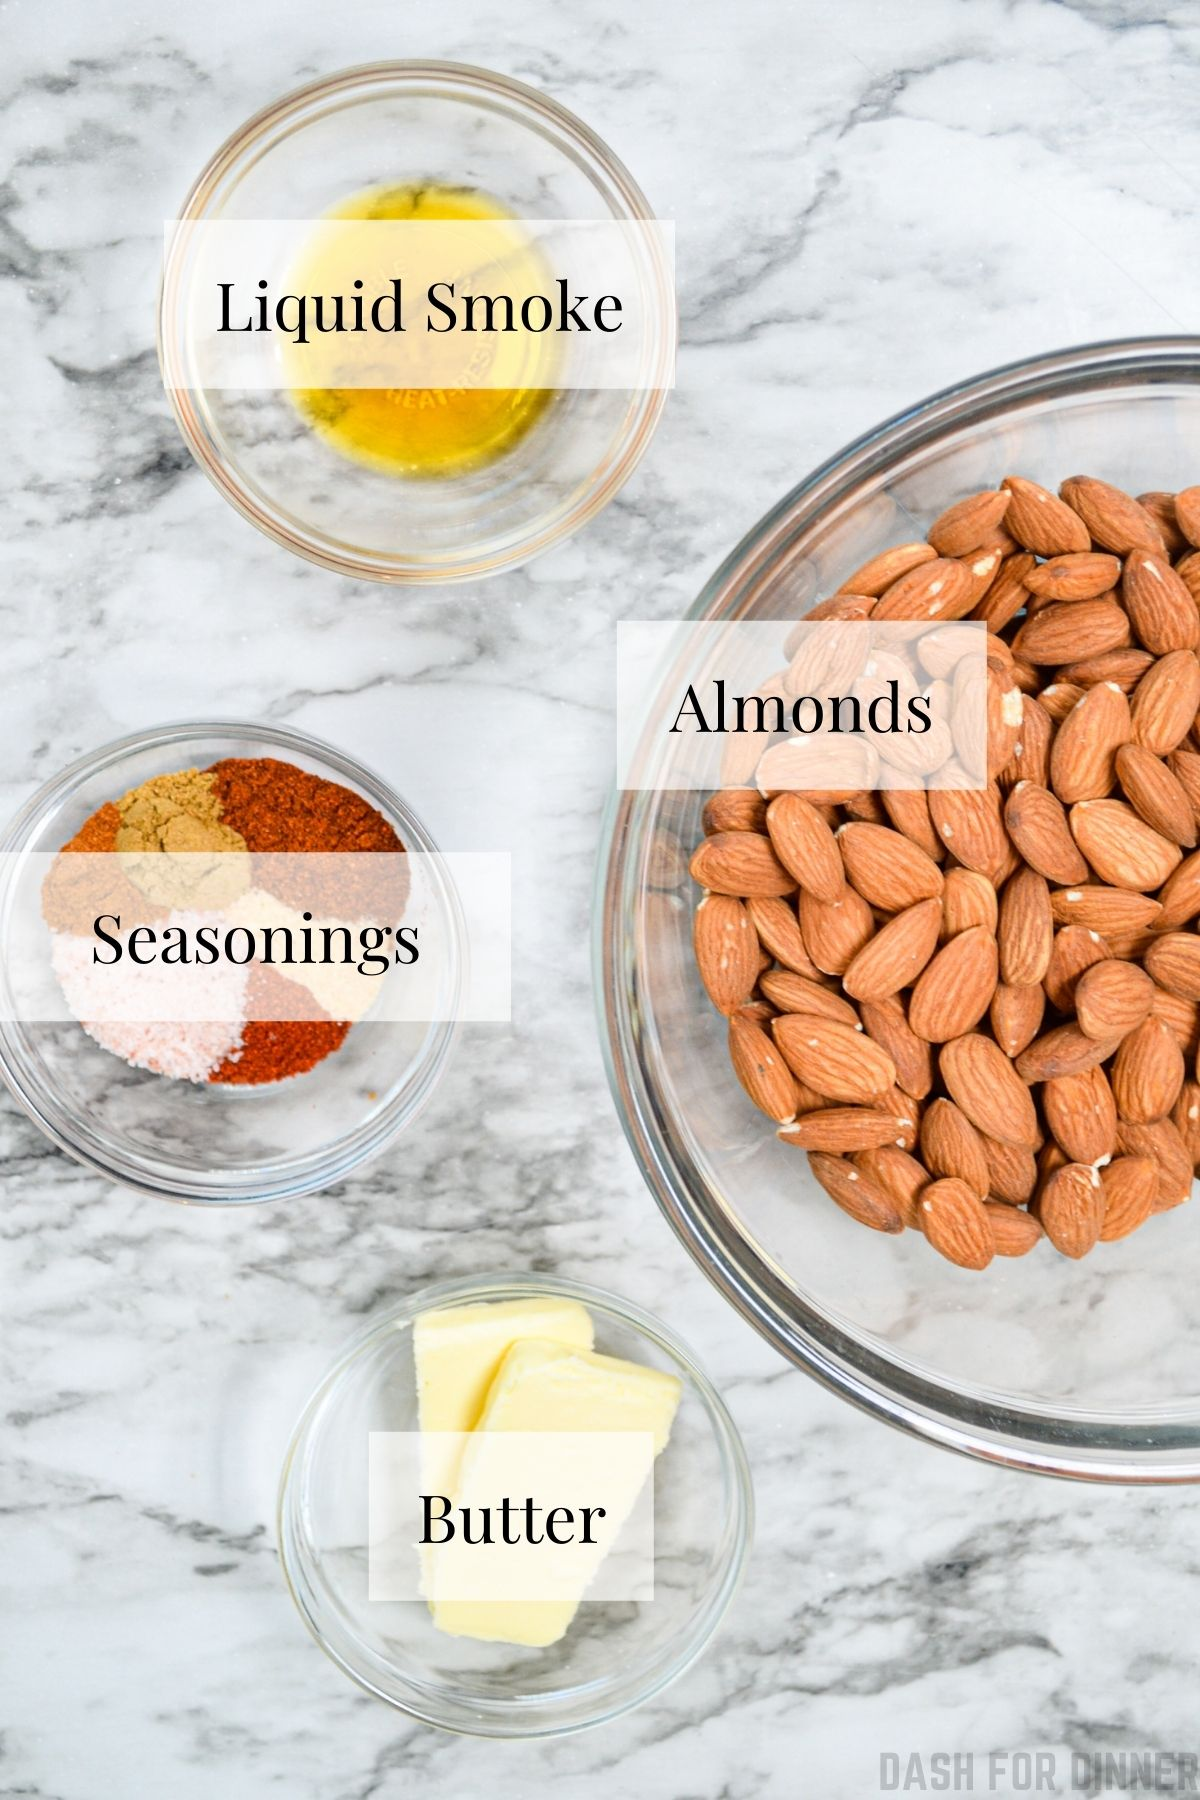 The ingredients needed to make roasted almonds: butter, almonds, liquid smoke, and butter.